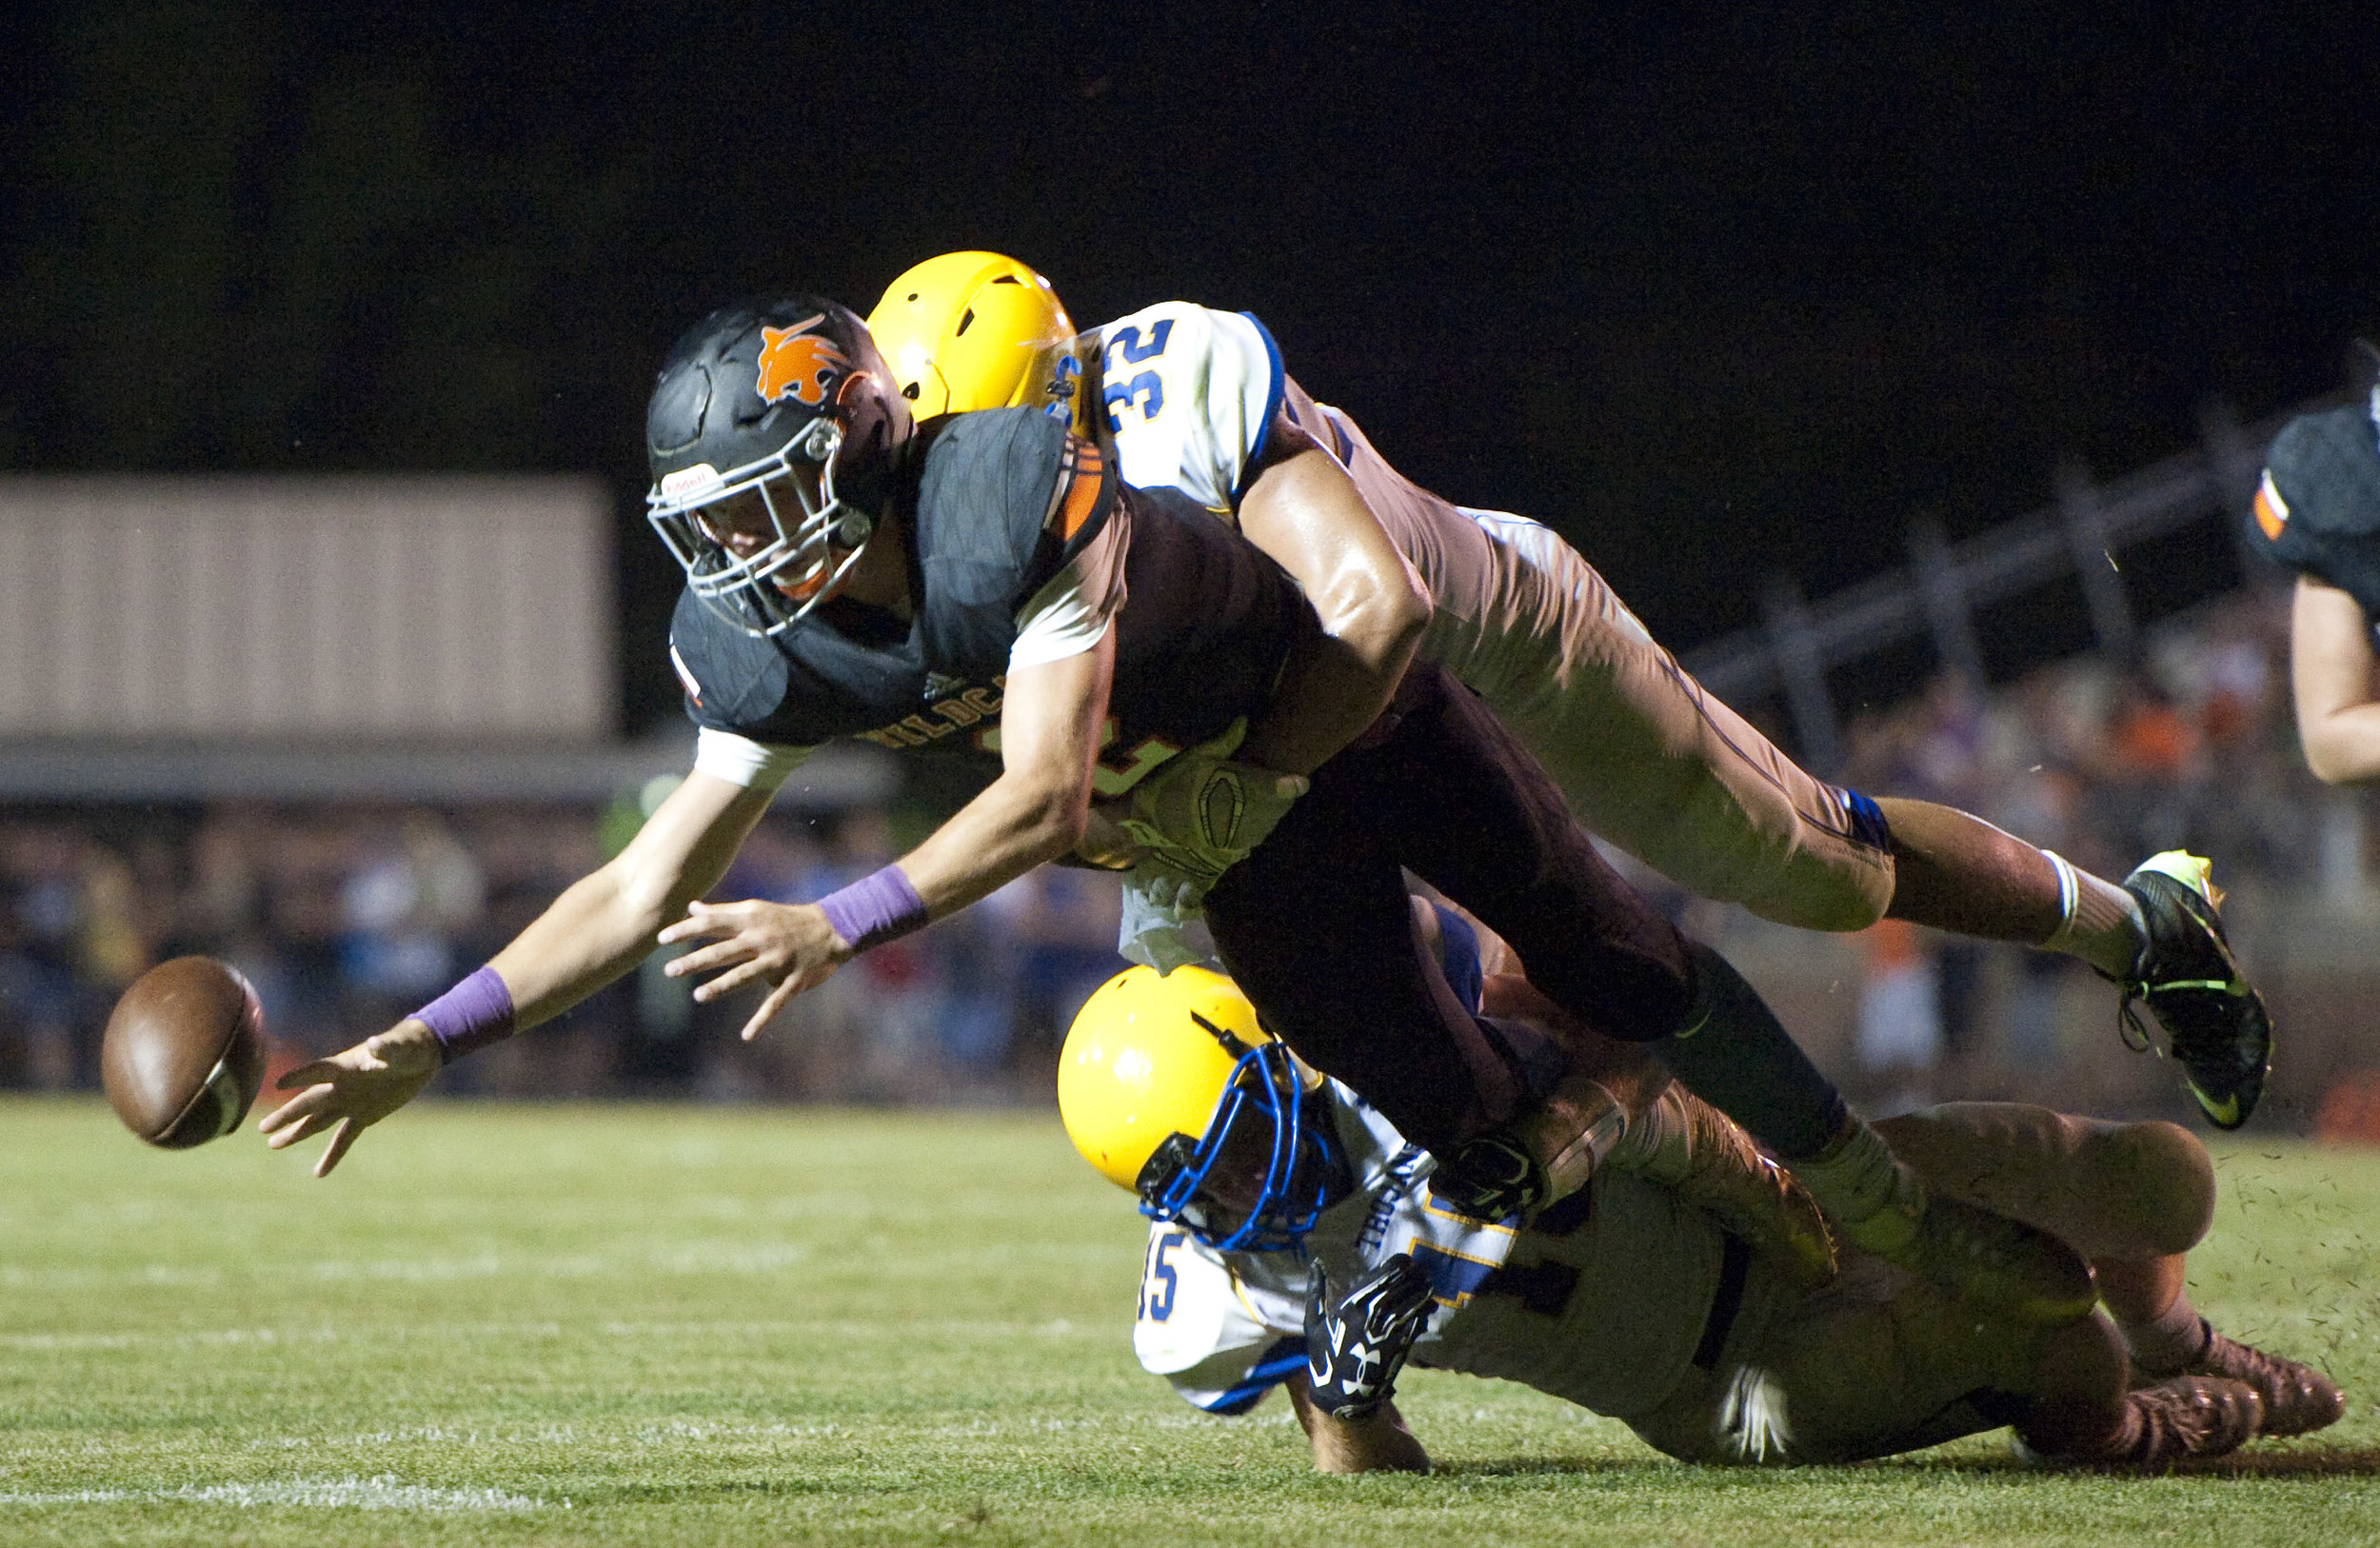 Latrobe's Austin Butler fumbles the ball while hit by Derry's Noah Wiencek during a football game on Friday, Aug. 26, 2016 Latrobe's Memorial Stadium. Derry won 28-20.